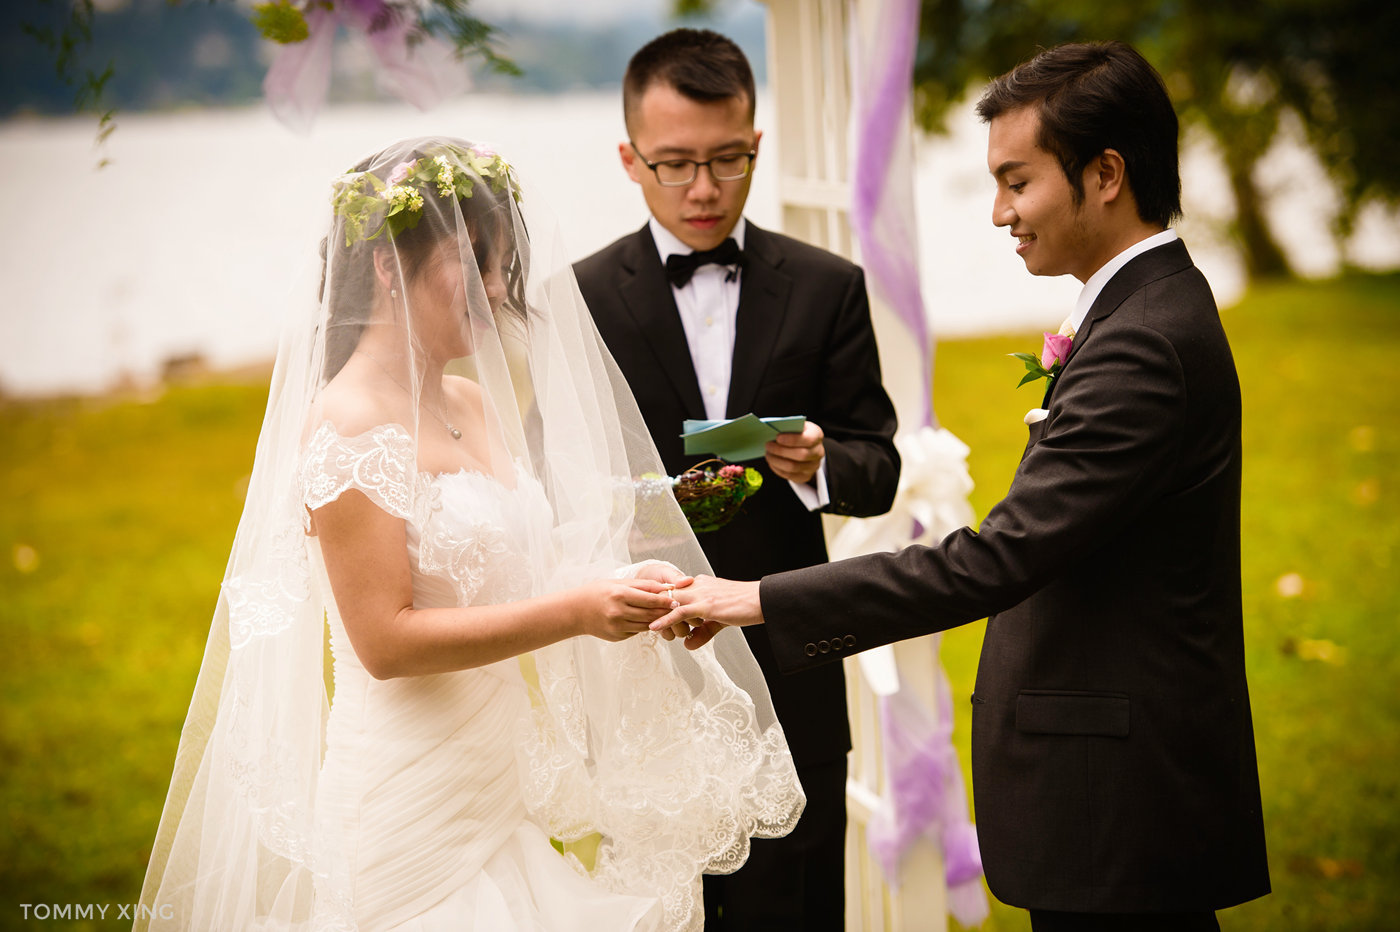 Seattle Wedding and pre wedding Los Angeles Tommy Xing Photography 西雅图洛杉矶旧金山婚礼婚纱照摄影师 085.jpg